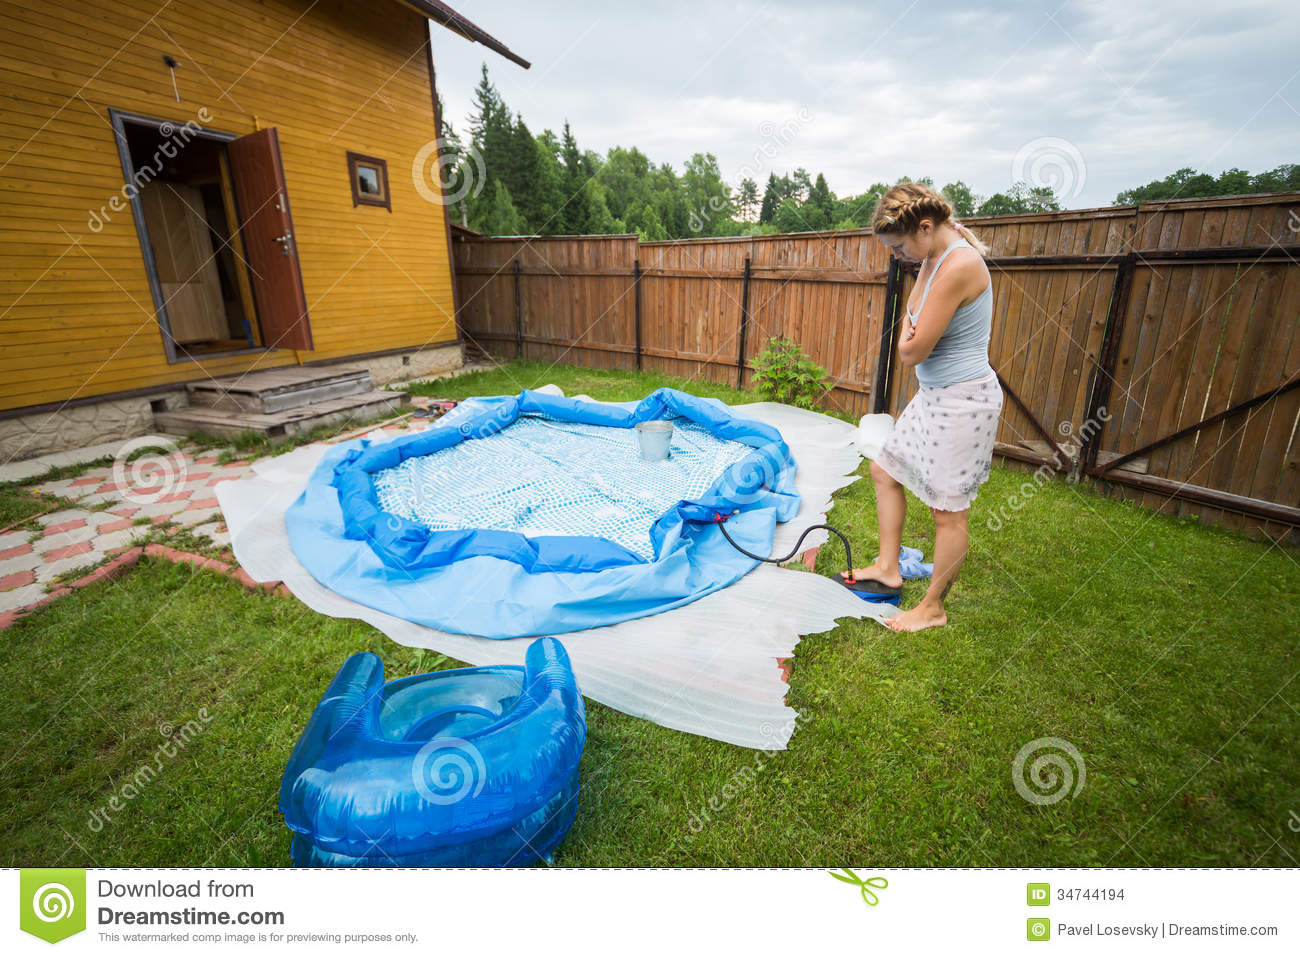 La femme gonfle la piscine gonflable photo stock image for Piscine xs prix